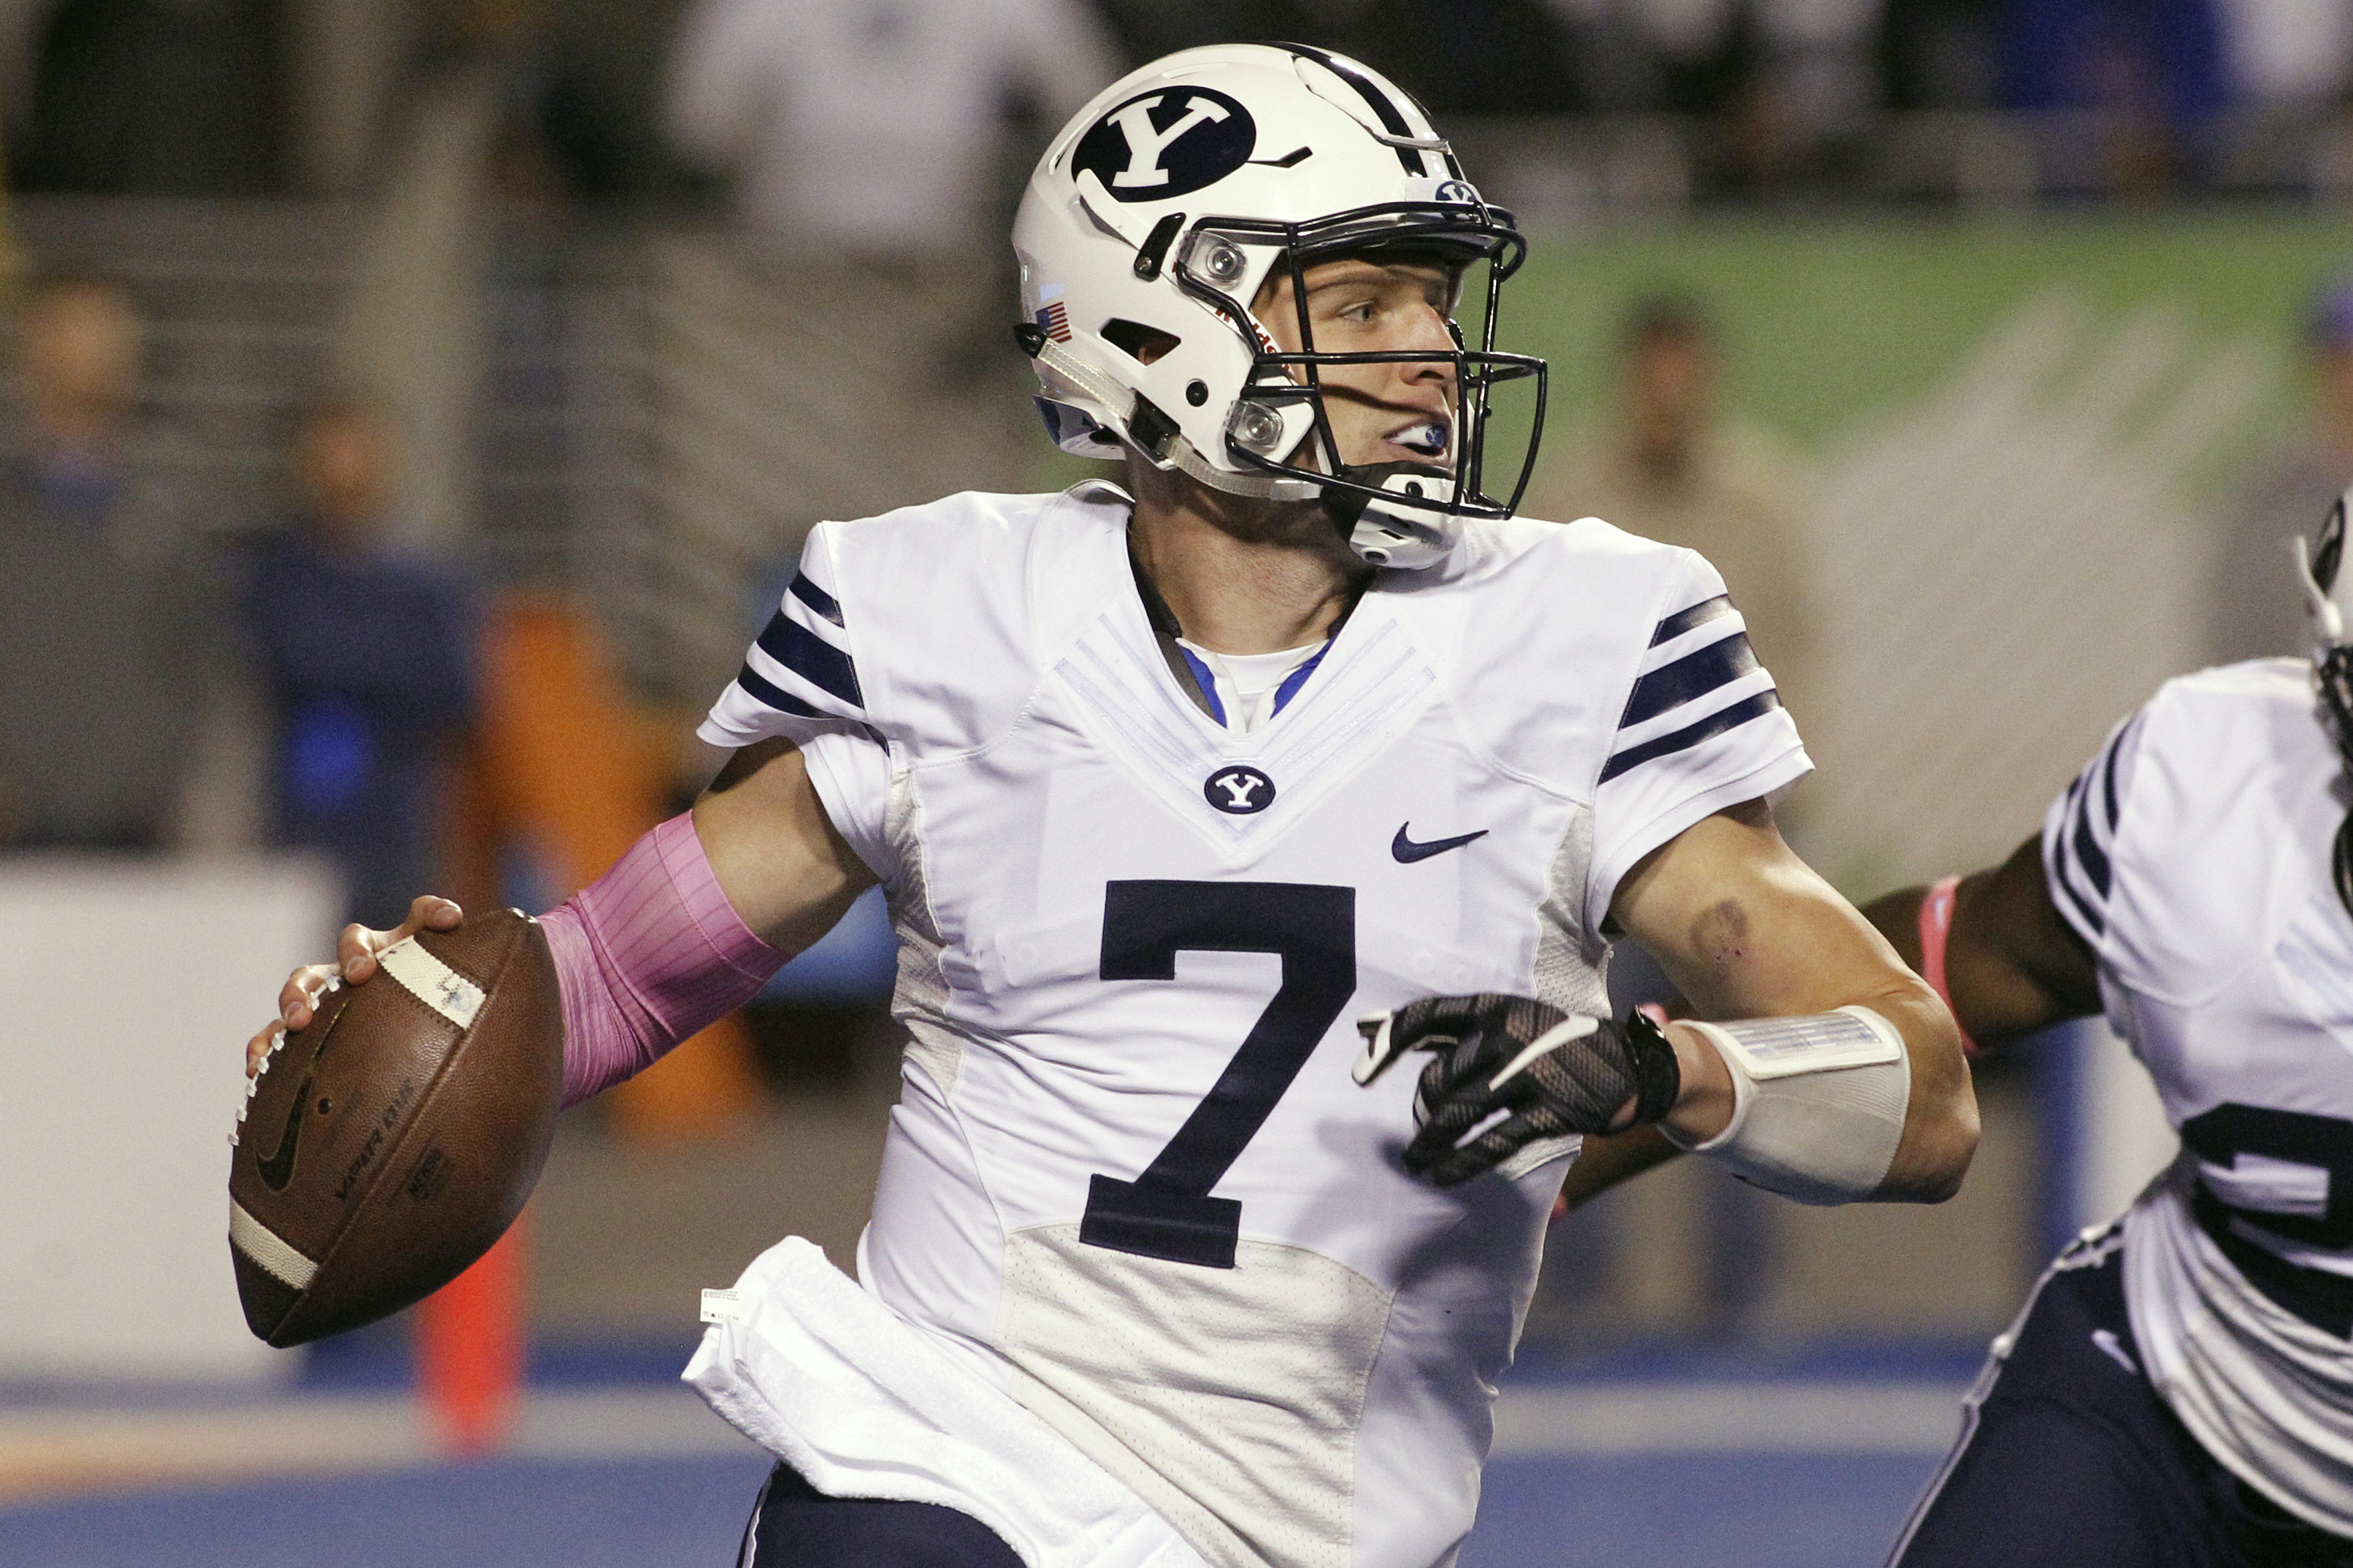 BYU quarterback Taysom Hill looks to pass during the first half of an NCAA college football game against Boise State in Boise, Idaho, Thursday, Oct. 20, 2016. (AP Photo/Otto Kitsinger)